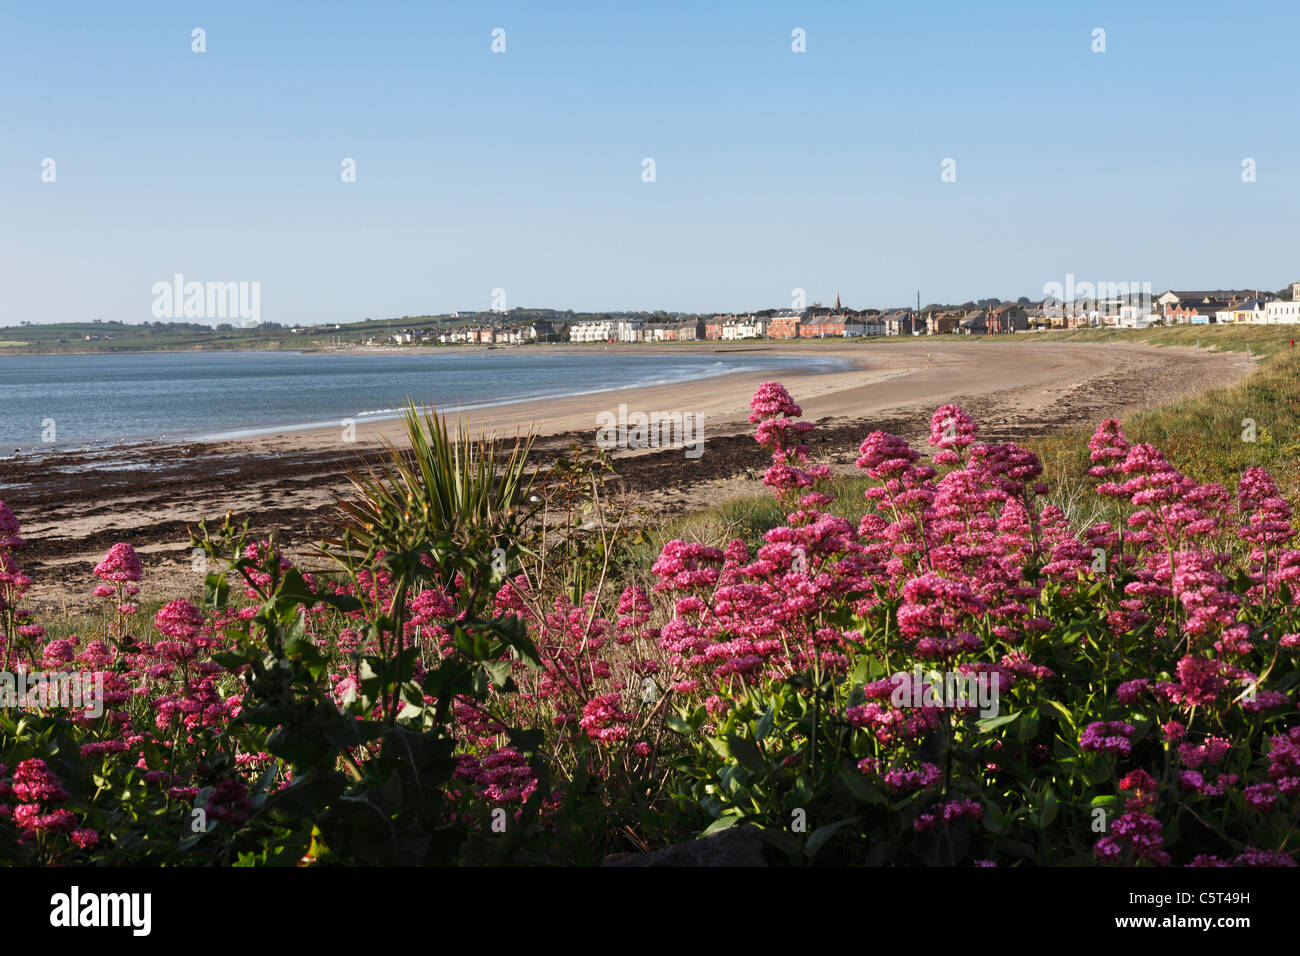 Republic of Ireland, County Fingal, Skerries, Red valerian near beachside - Stock Image